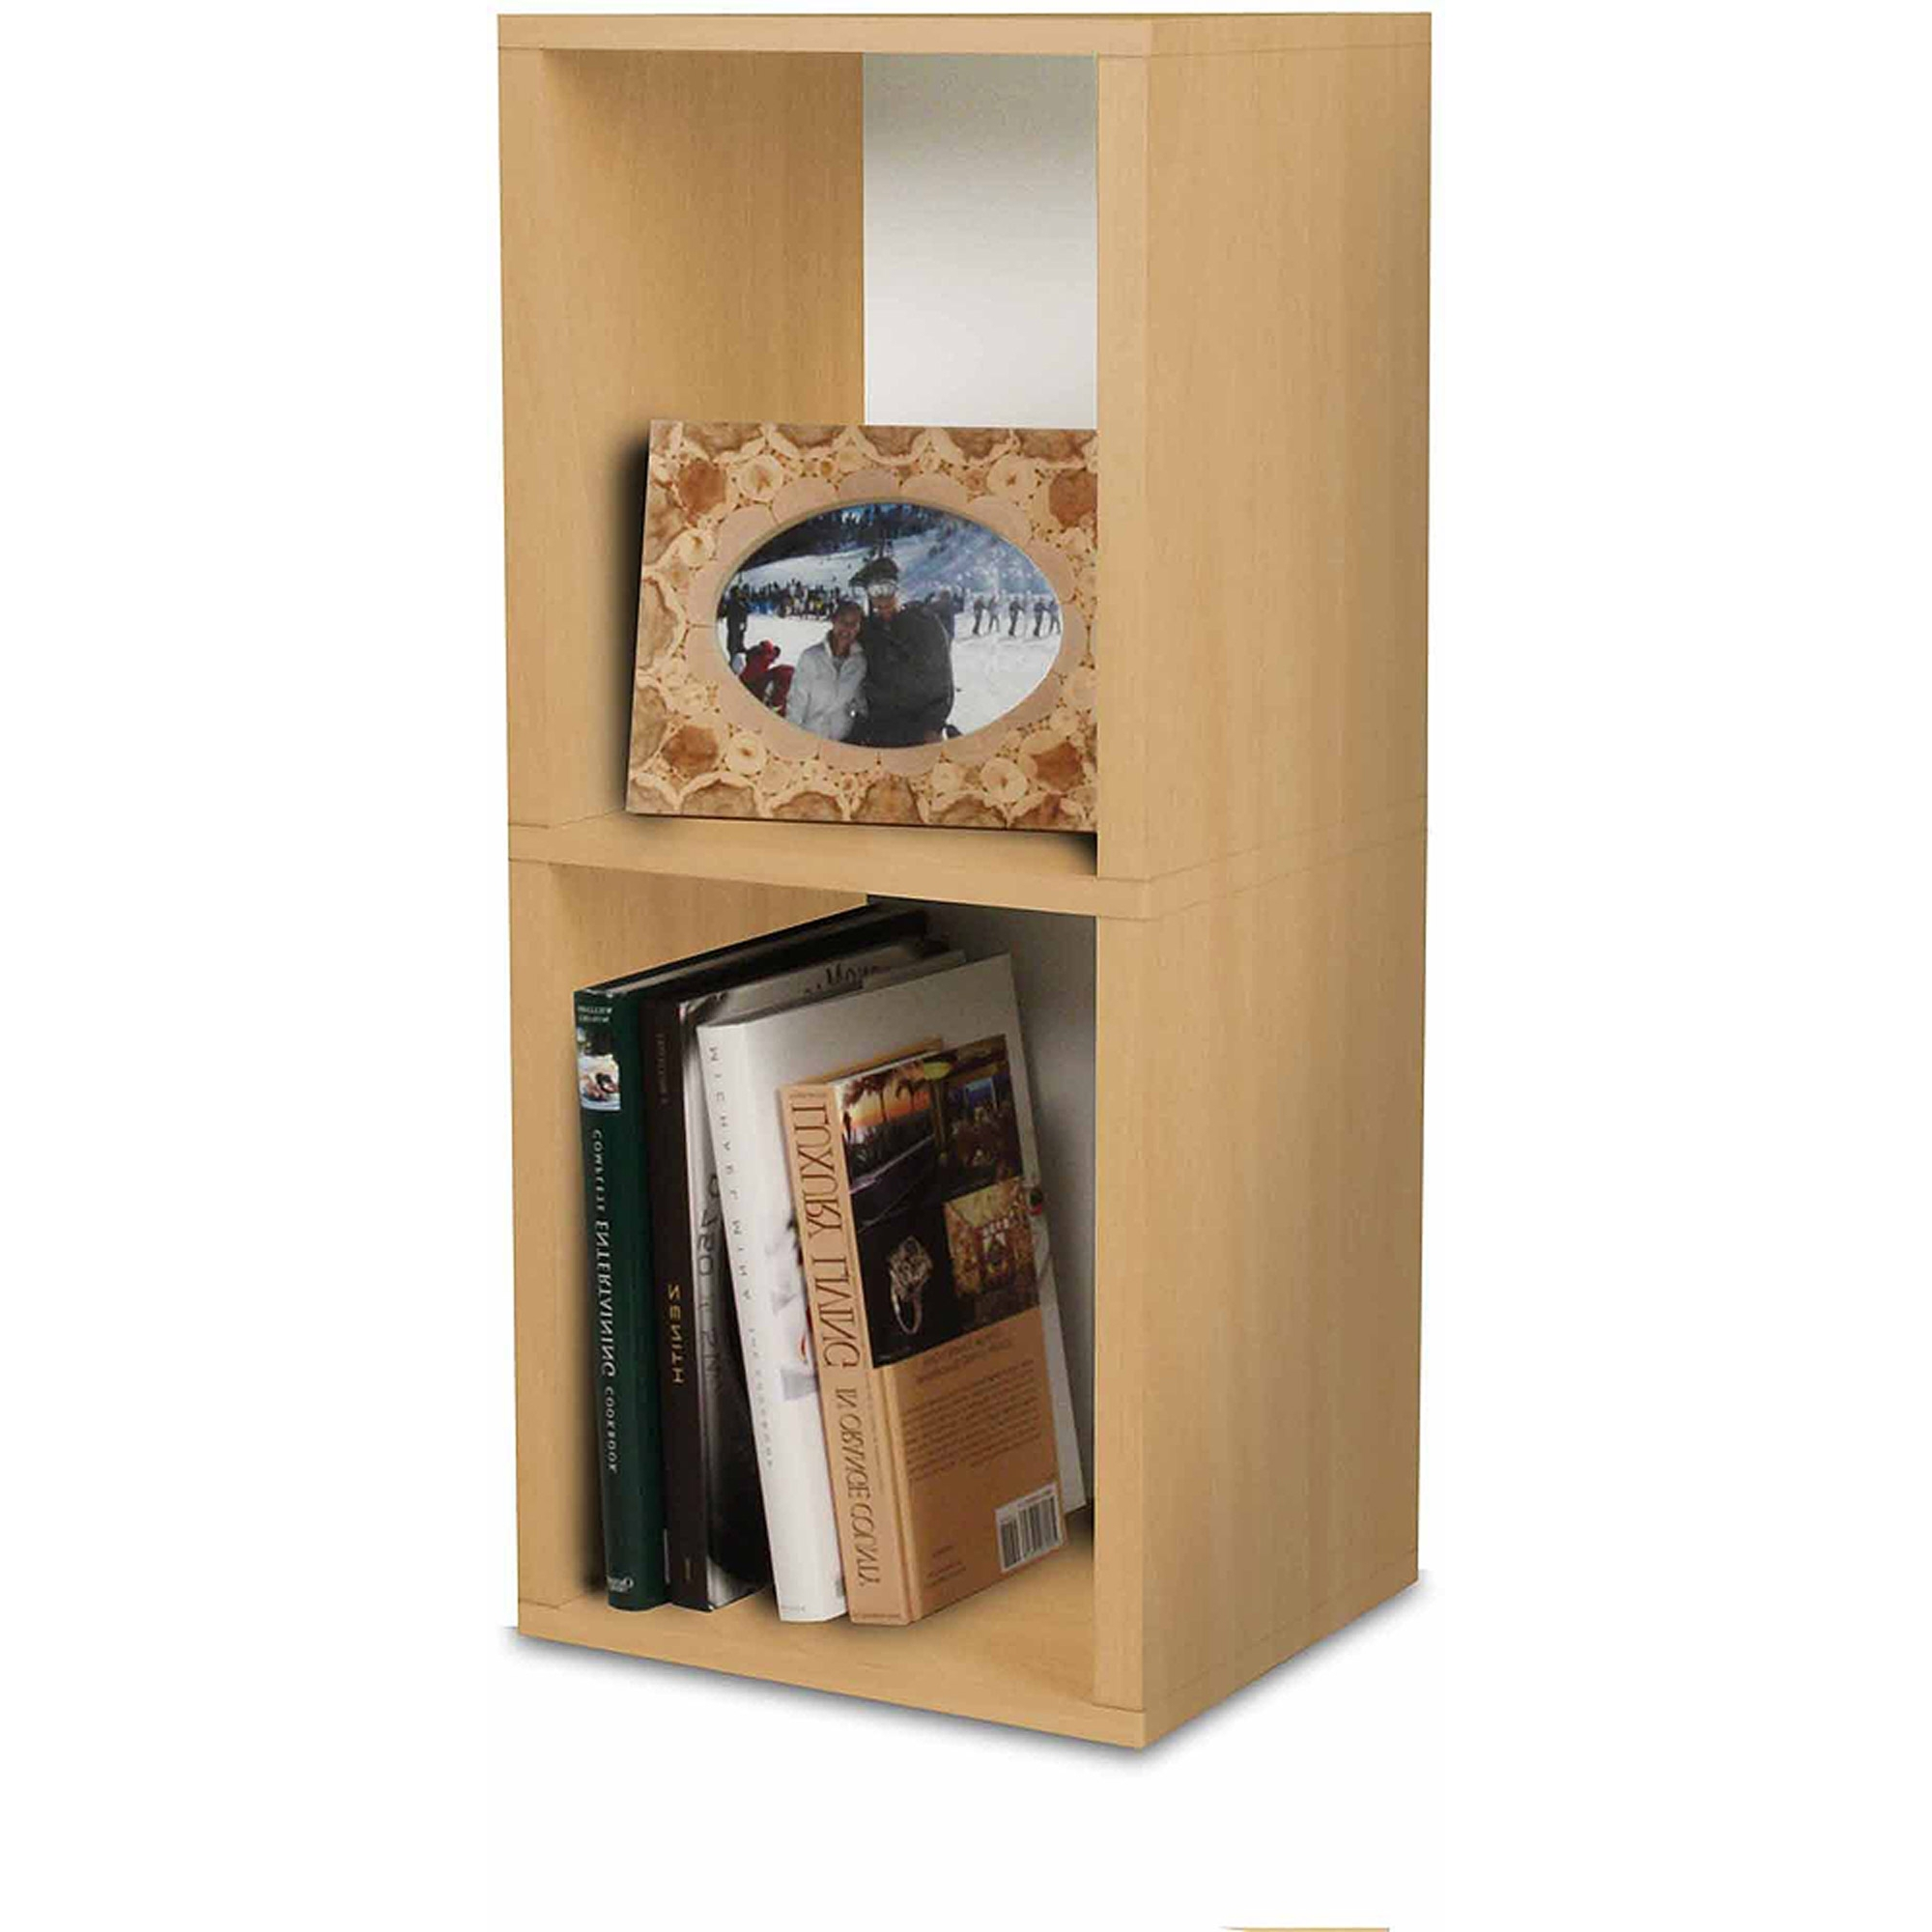 Trendy Bookcase 96+ Breathtaking Short Narrow Image Design Pretty Intended For Short Narrow Bookcases (View 14 of 15)